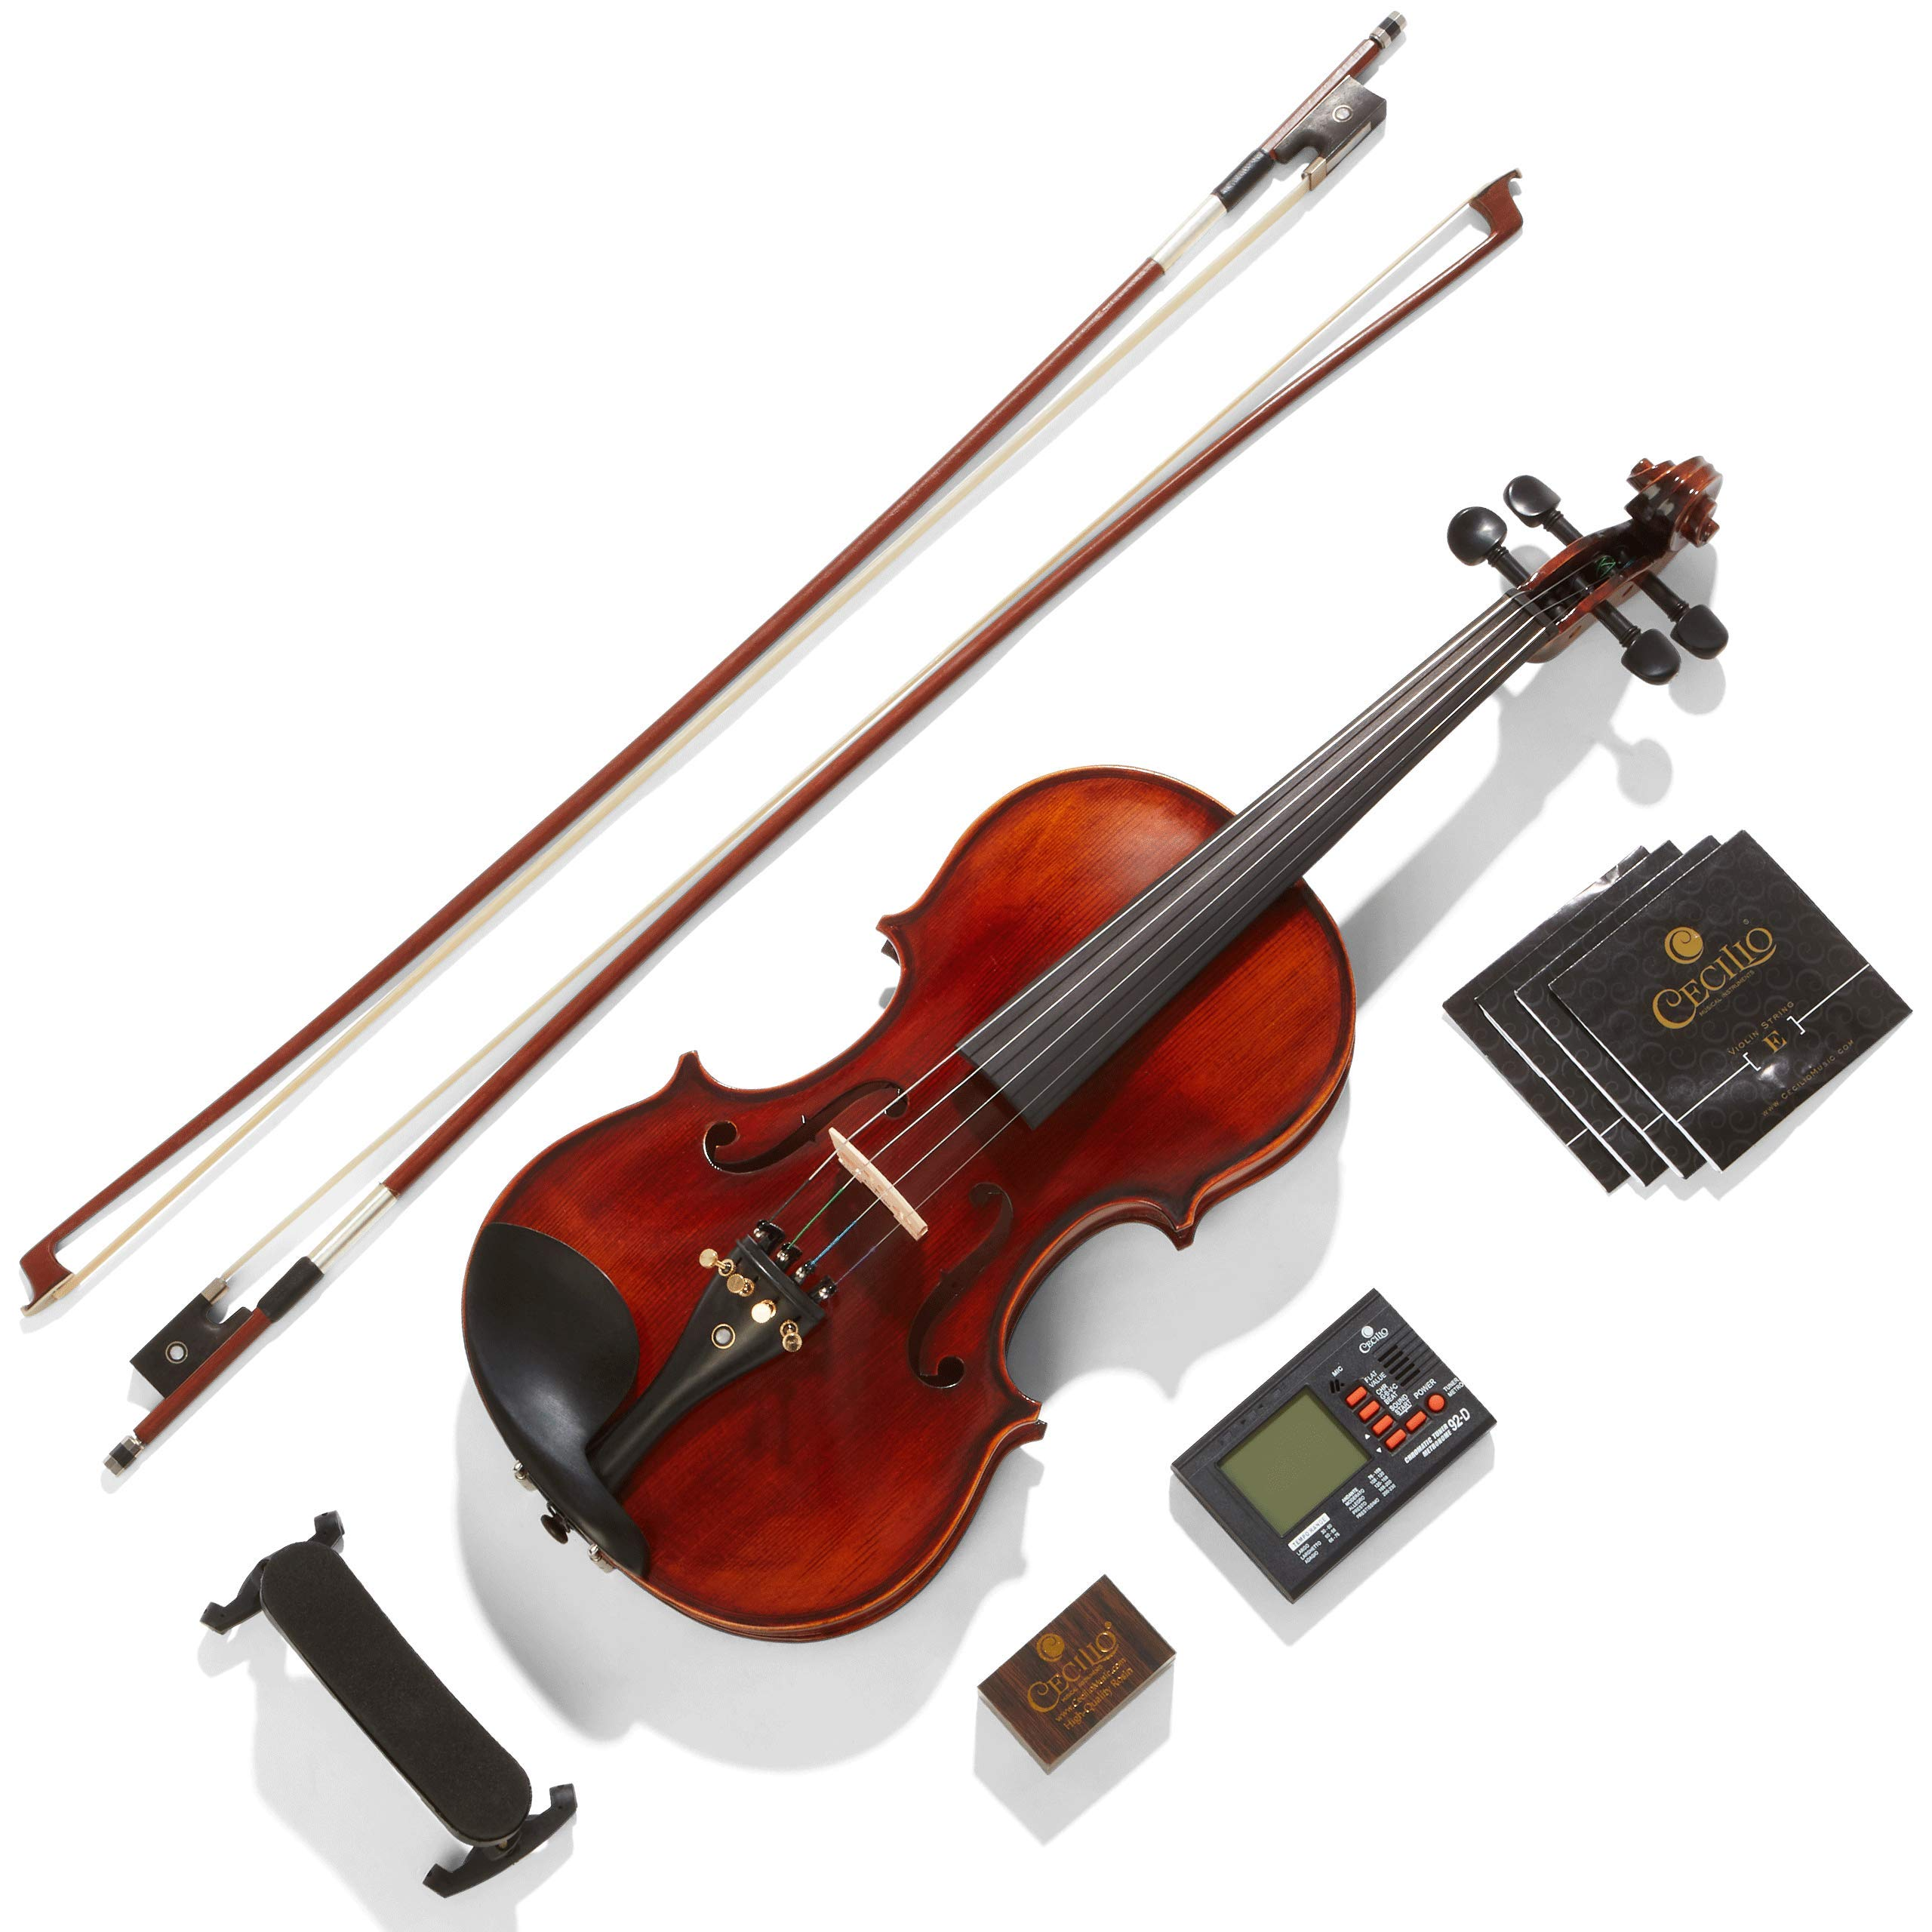 Mendini By Cecilio Violin - MV500+92D - Size 4/4 (Full Size), Black Solid Wood - Flamed, 1-Piece Violins w/Case, Tuner, Shoulder Rest, Bow, Rosin, Bridge & Strings - Adult, Kids